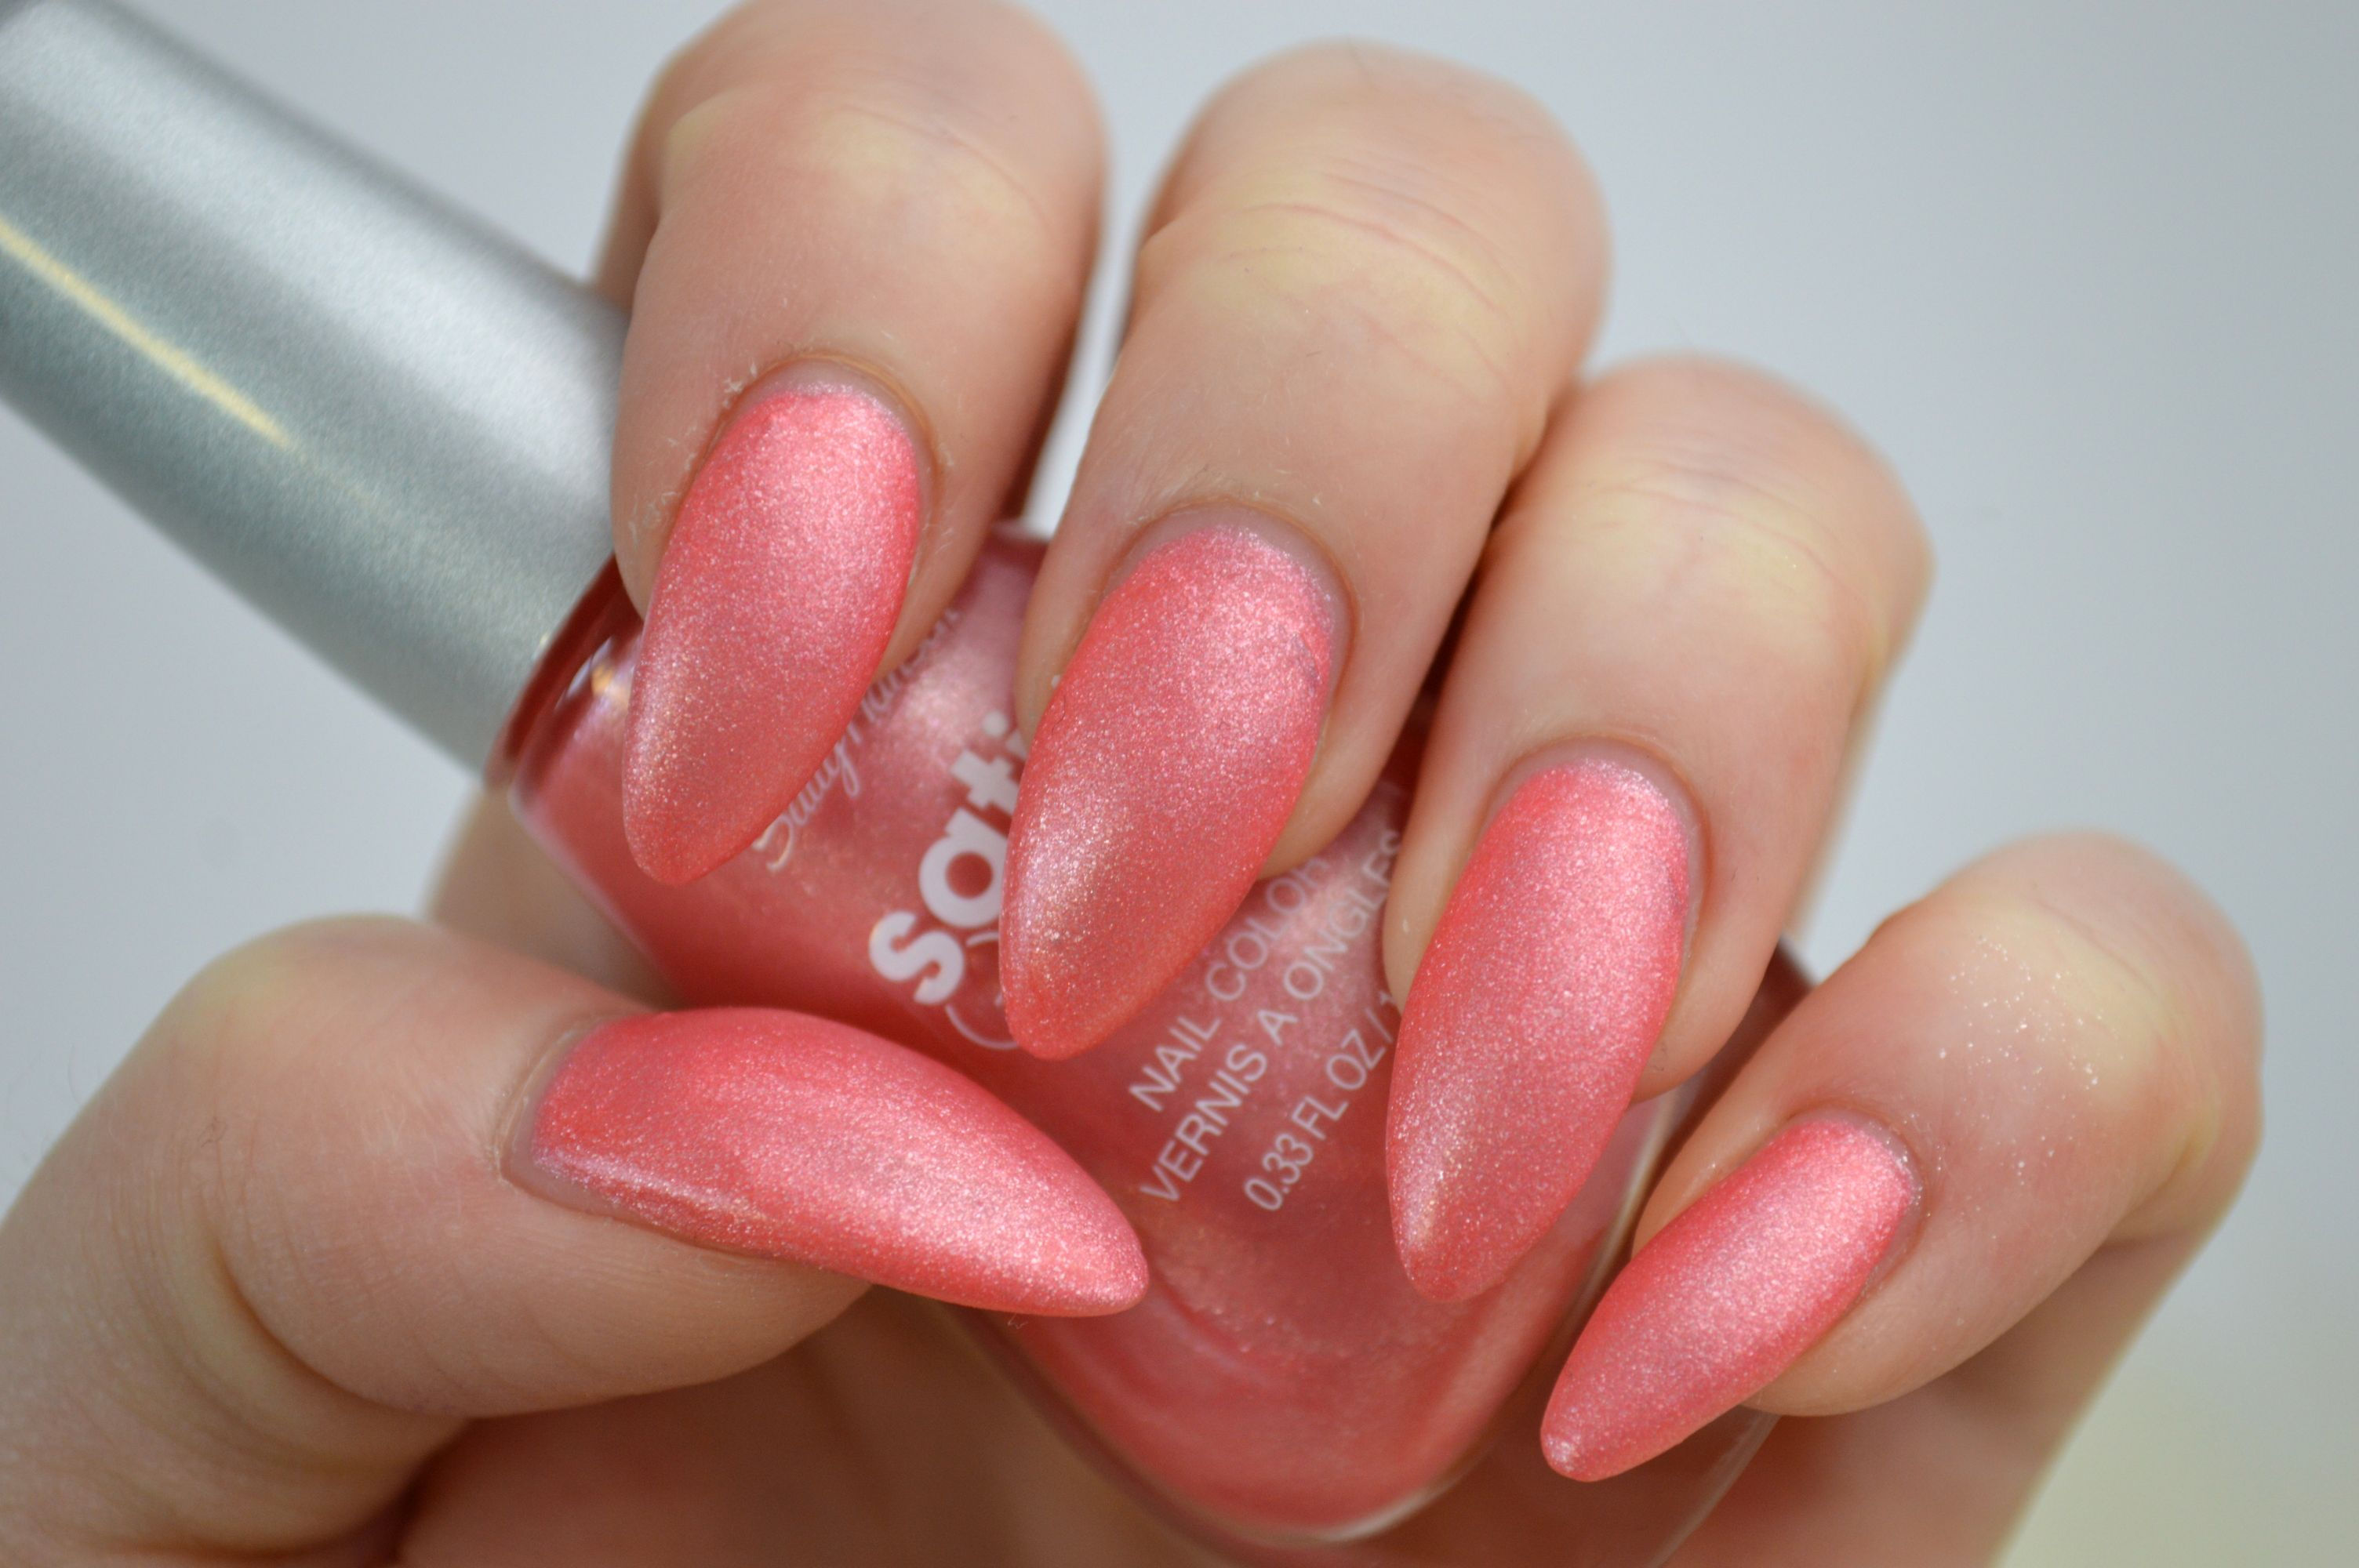 Sally_Hansen_Satin_Glam_Chic_Pink